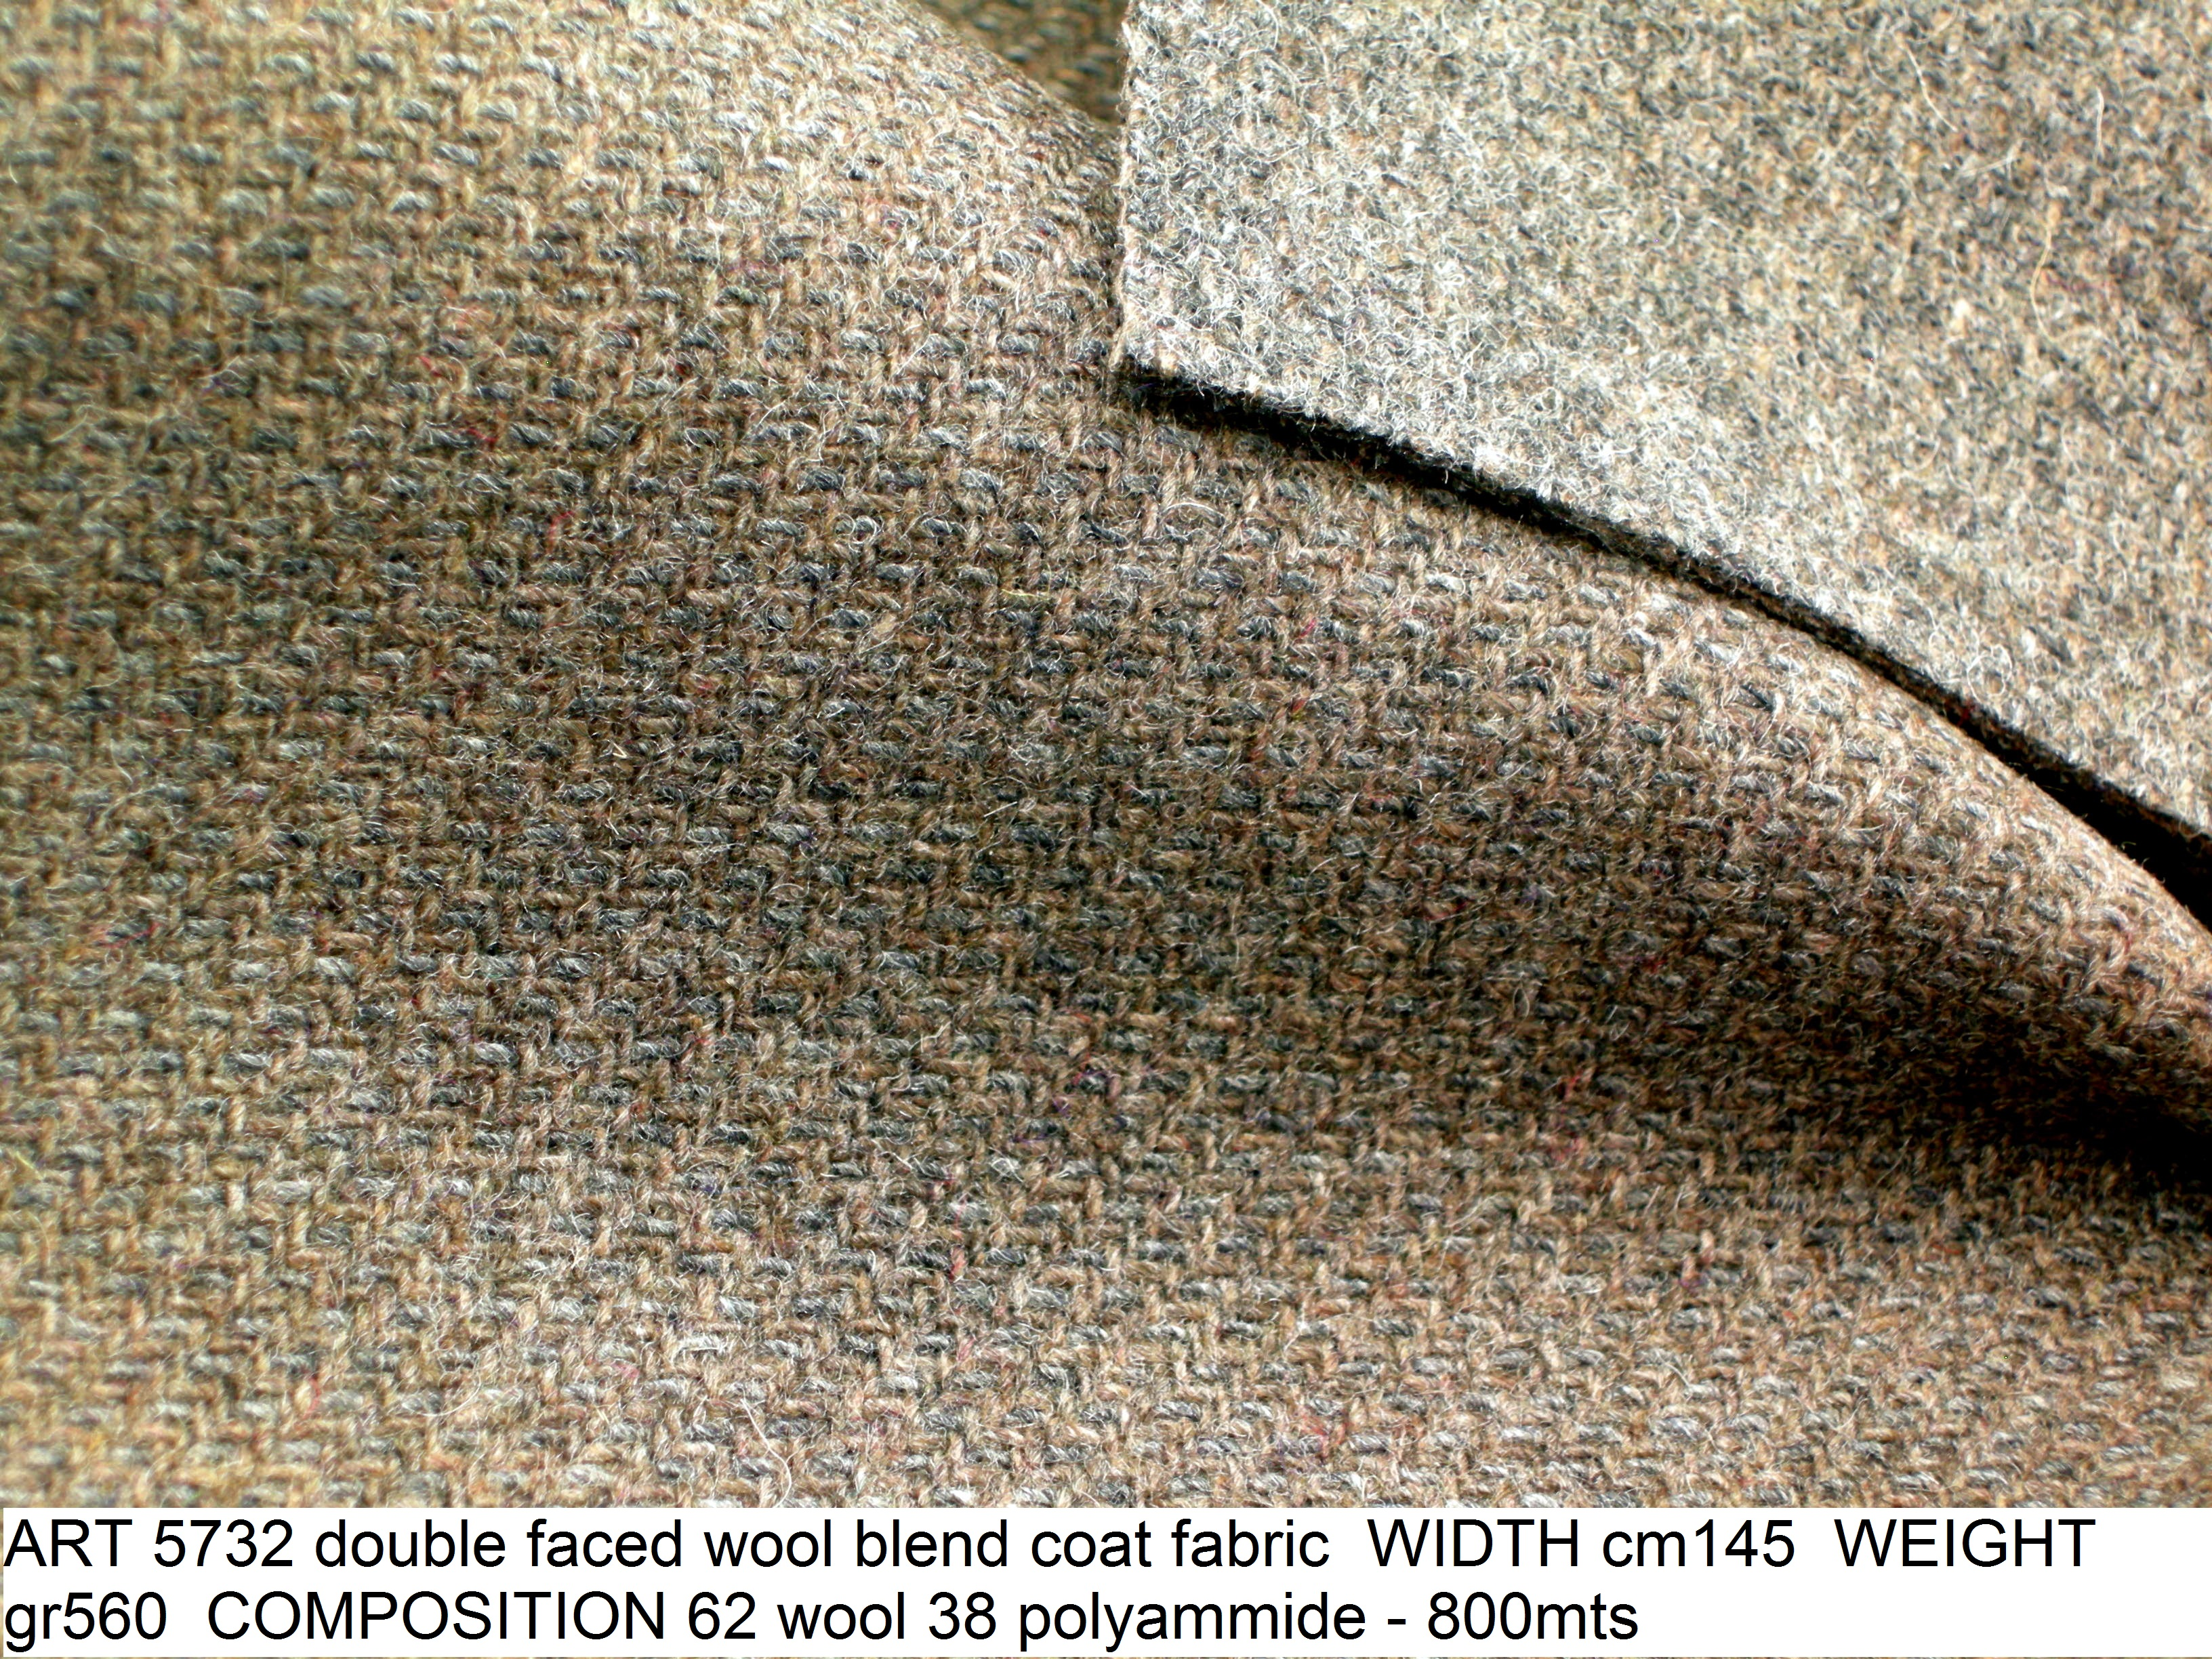 ART 5732 double faced wool blend coat fabric WIDTH cm145 WEIGHT gr560 COMPOSITION 62 wool 38 polyammide - 800mts